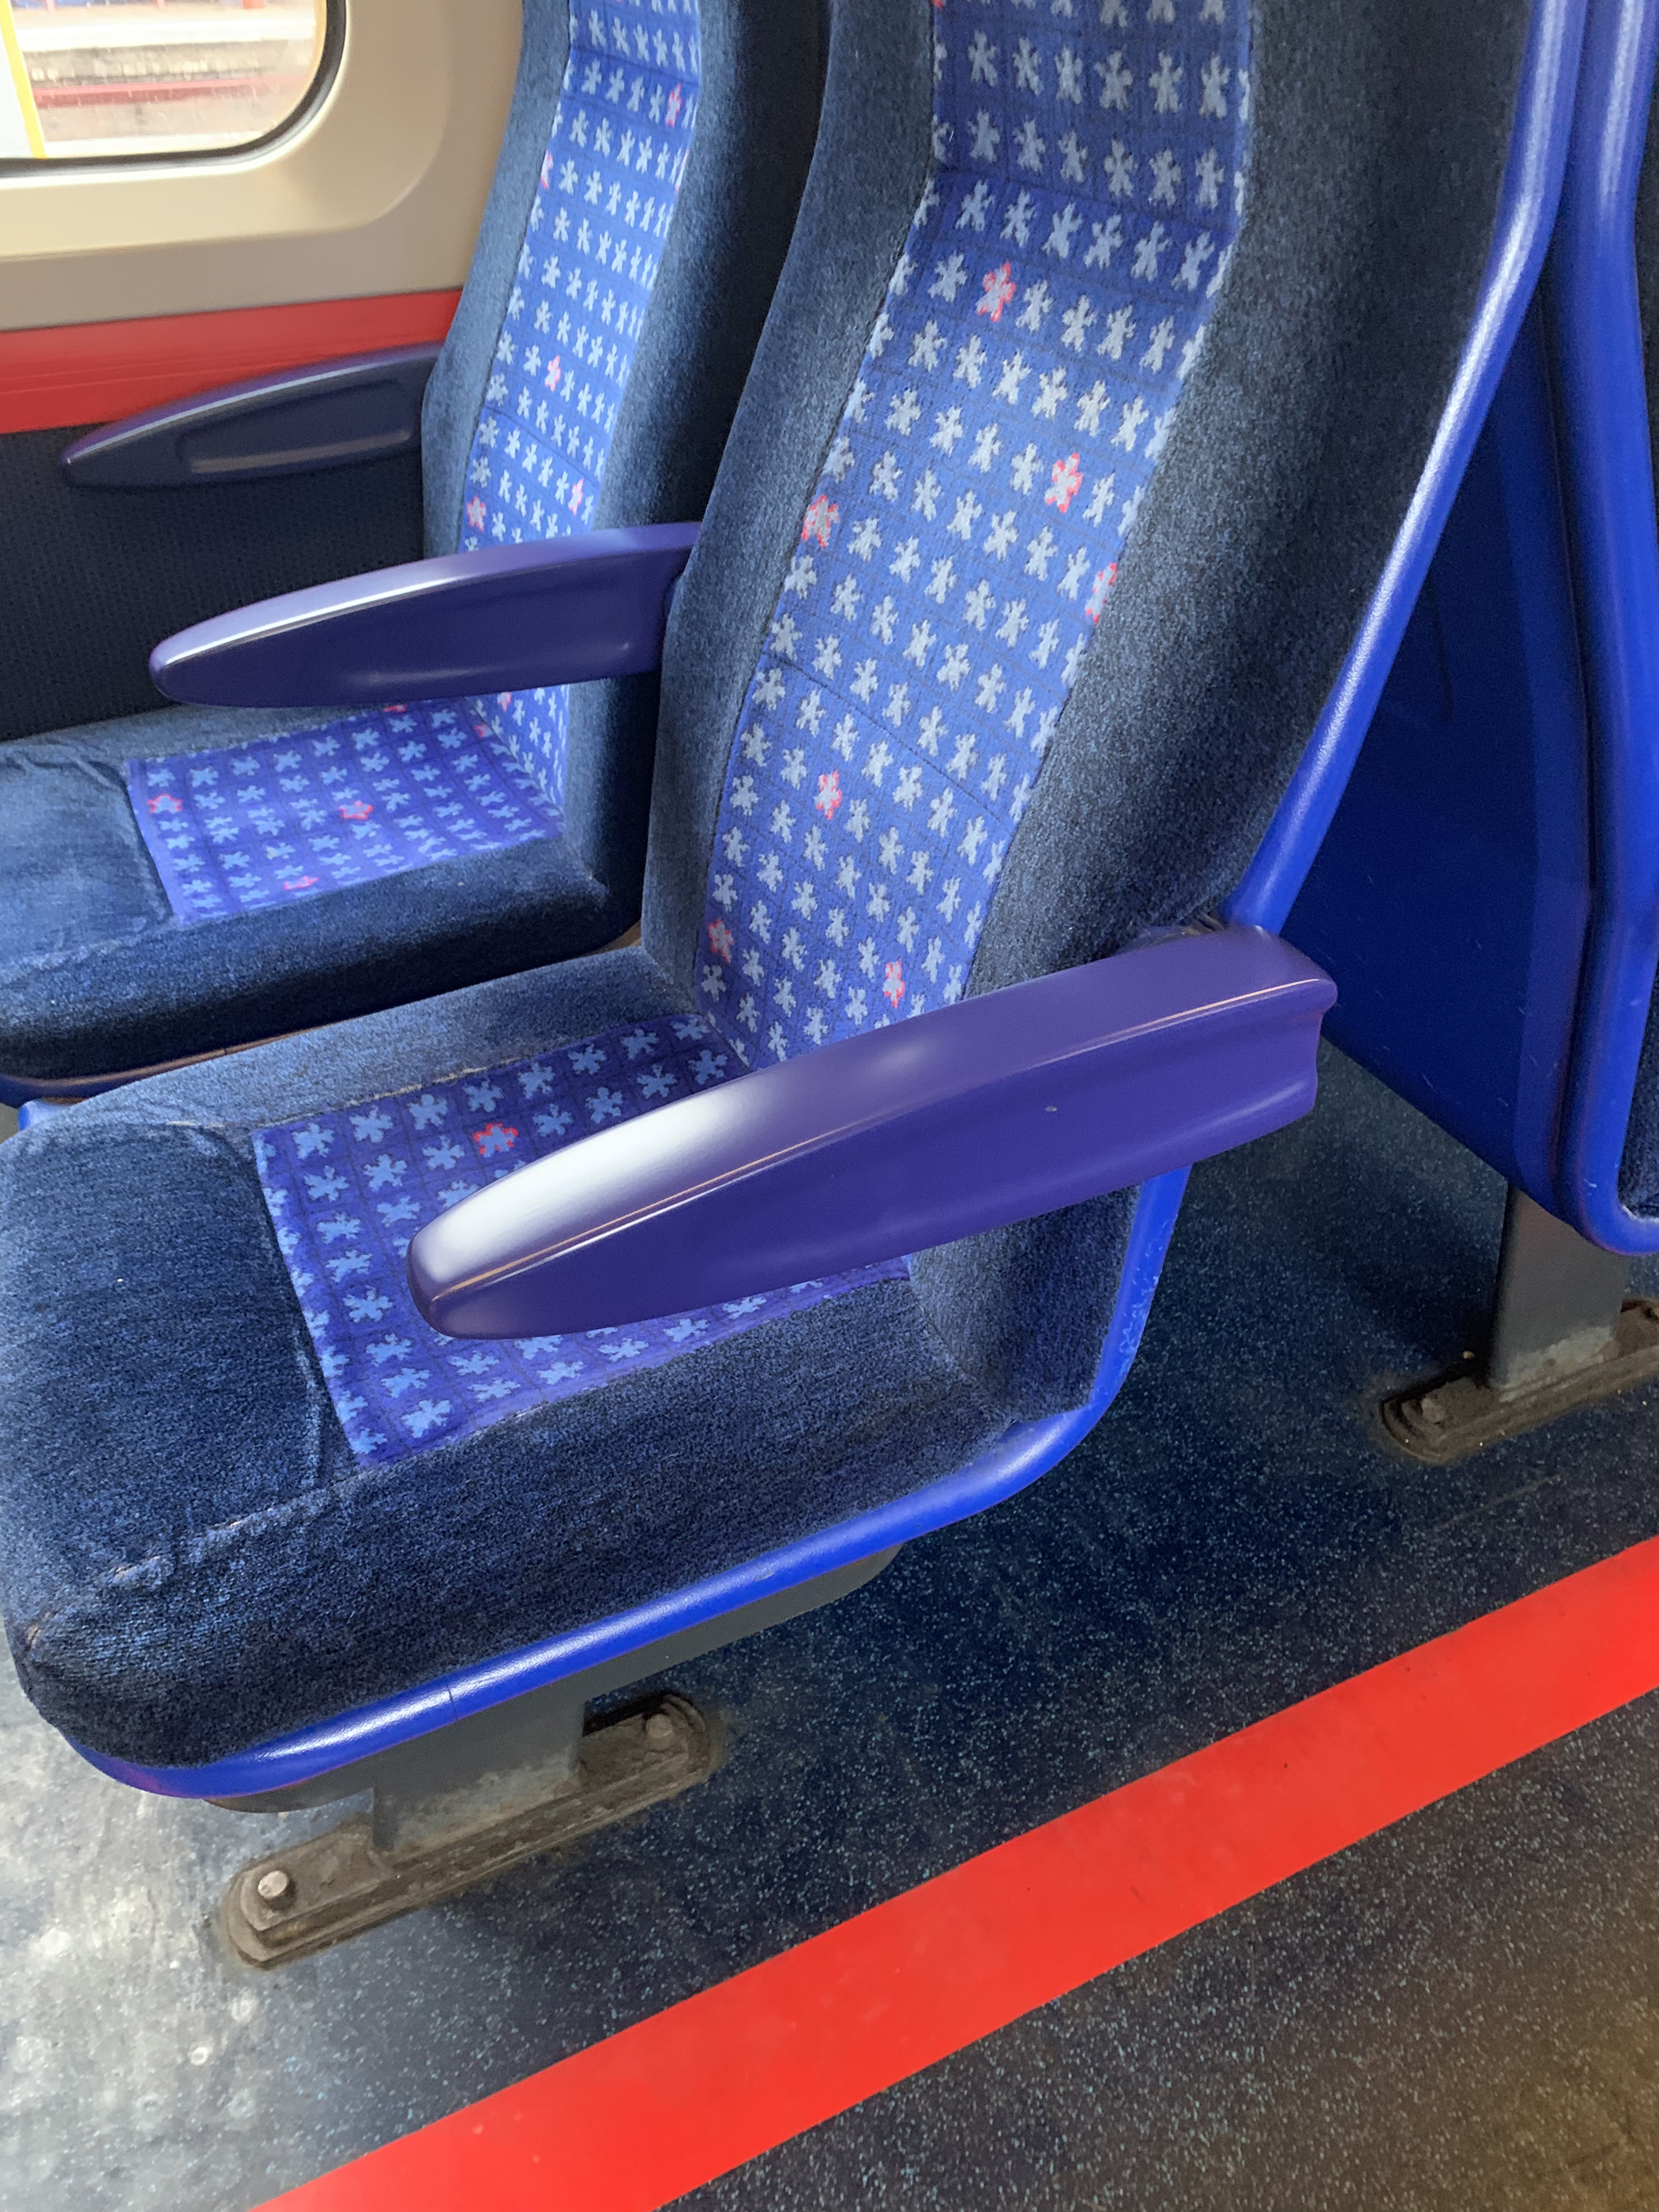 3D printed armrest on Chiltern Railways train – produced 94% faster compared to traditional manufacturing methods.